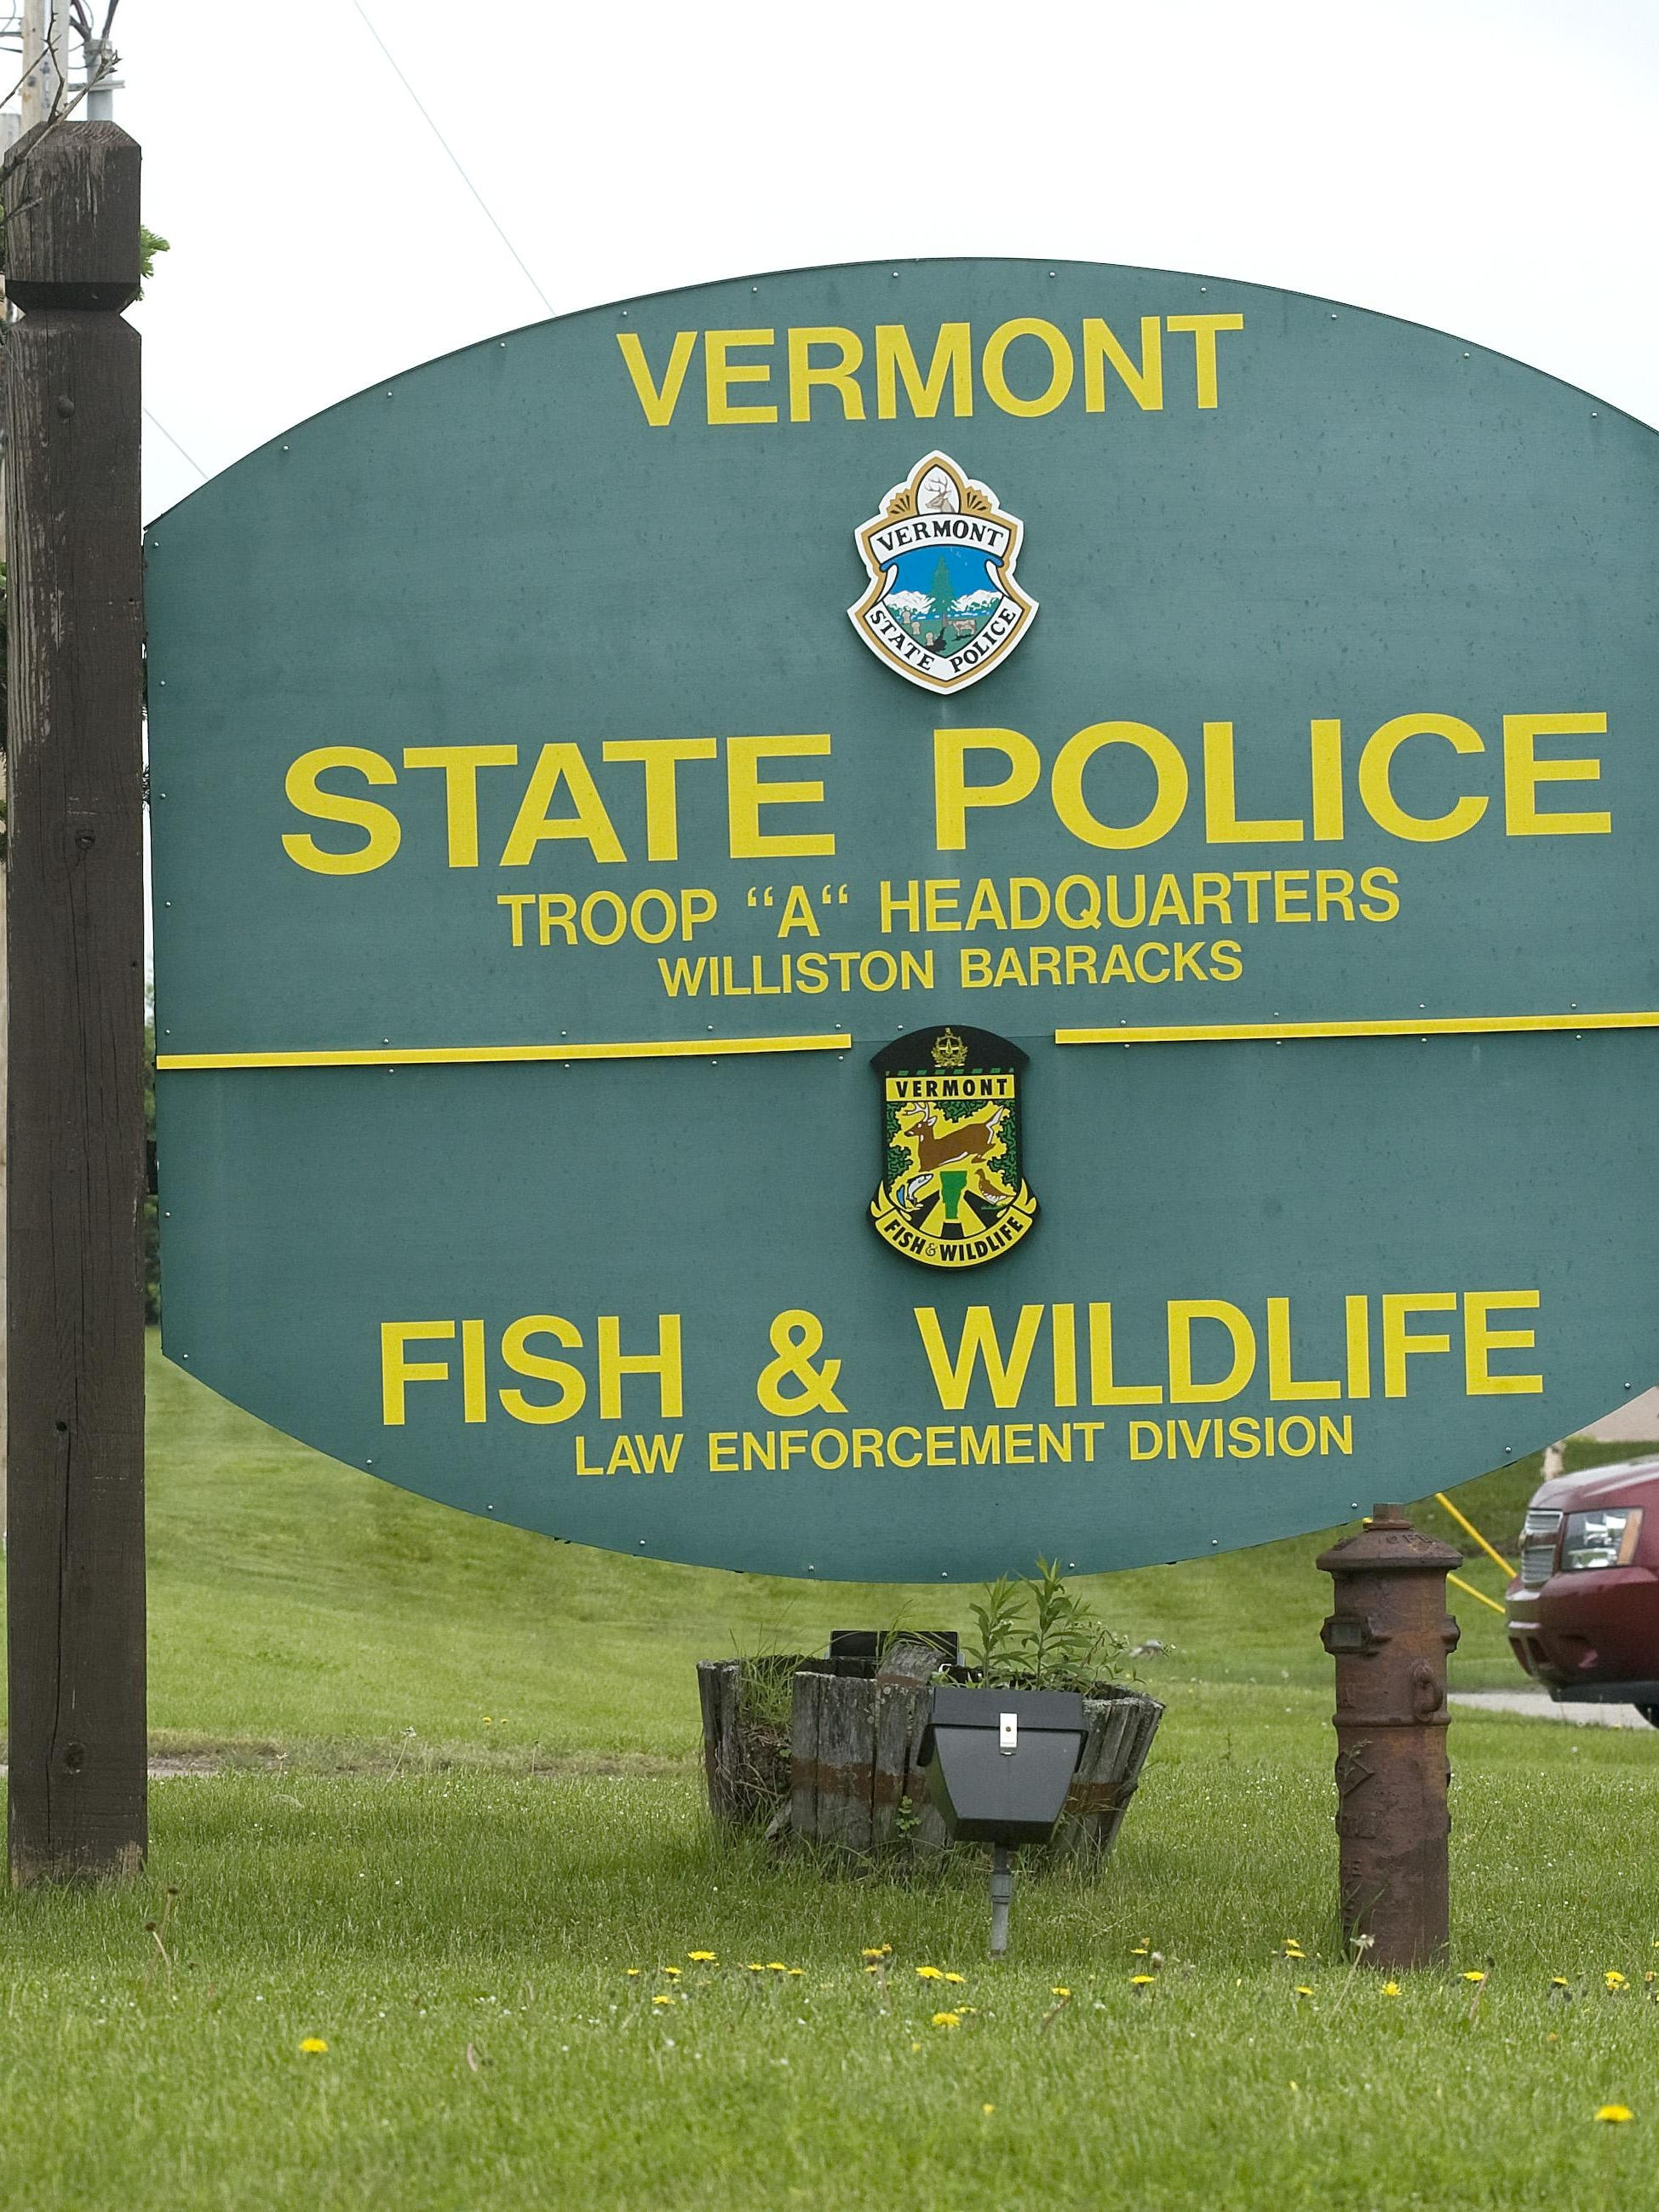 vt state police incident report - Emayti